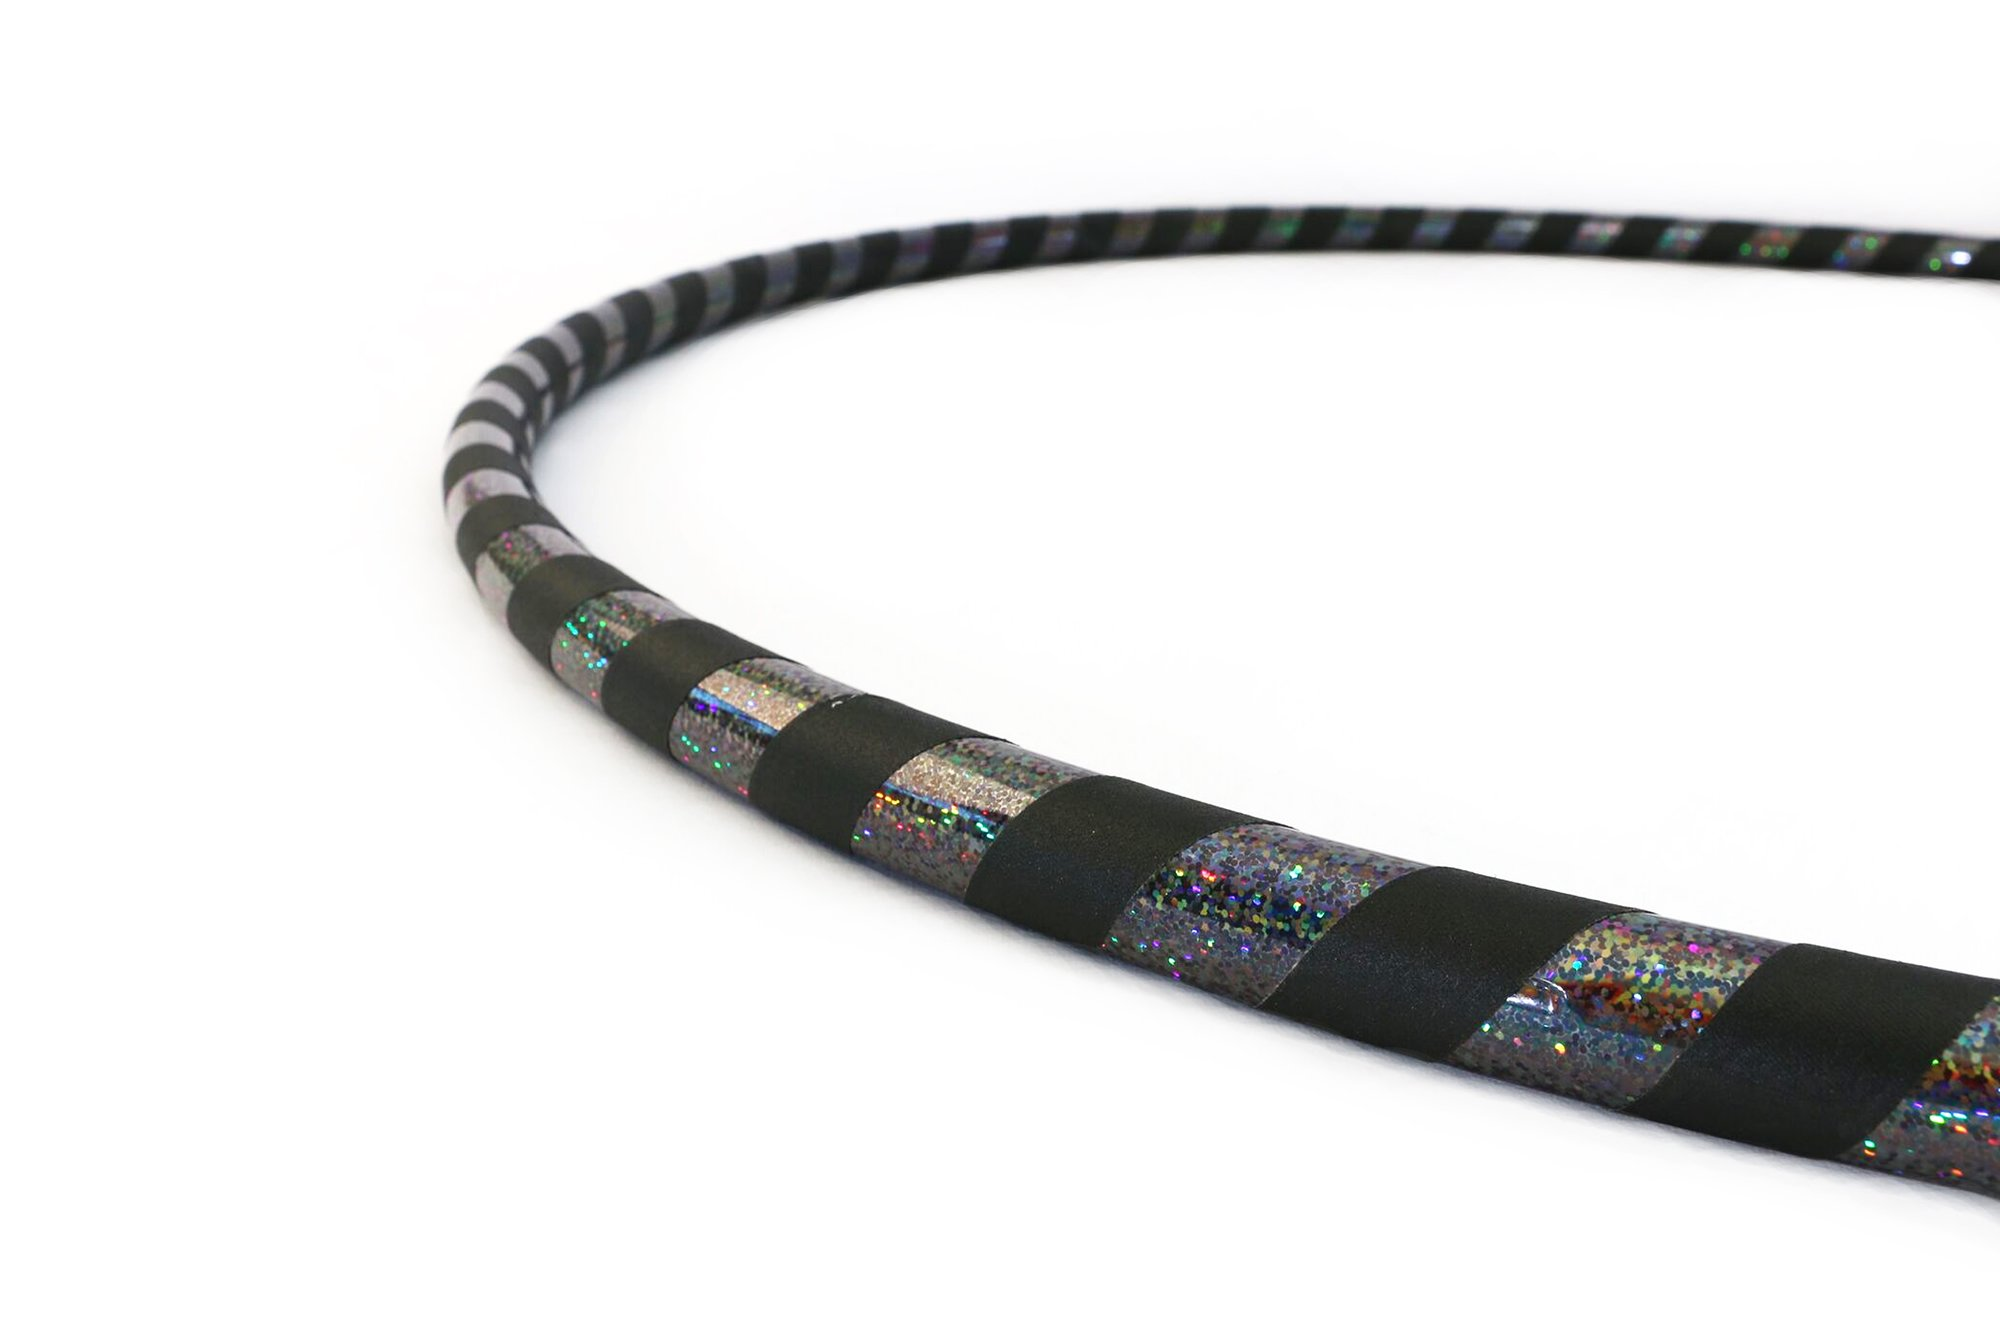 Weighted Hula Hoop for Exercise. Your Choice of Color. Made in The USA. (Black, Small - 36'' Diameter)